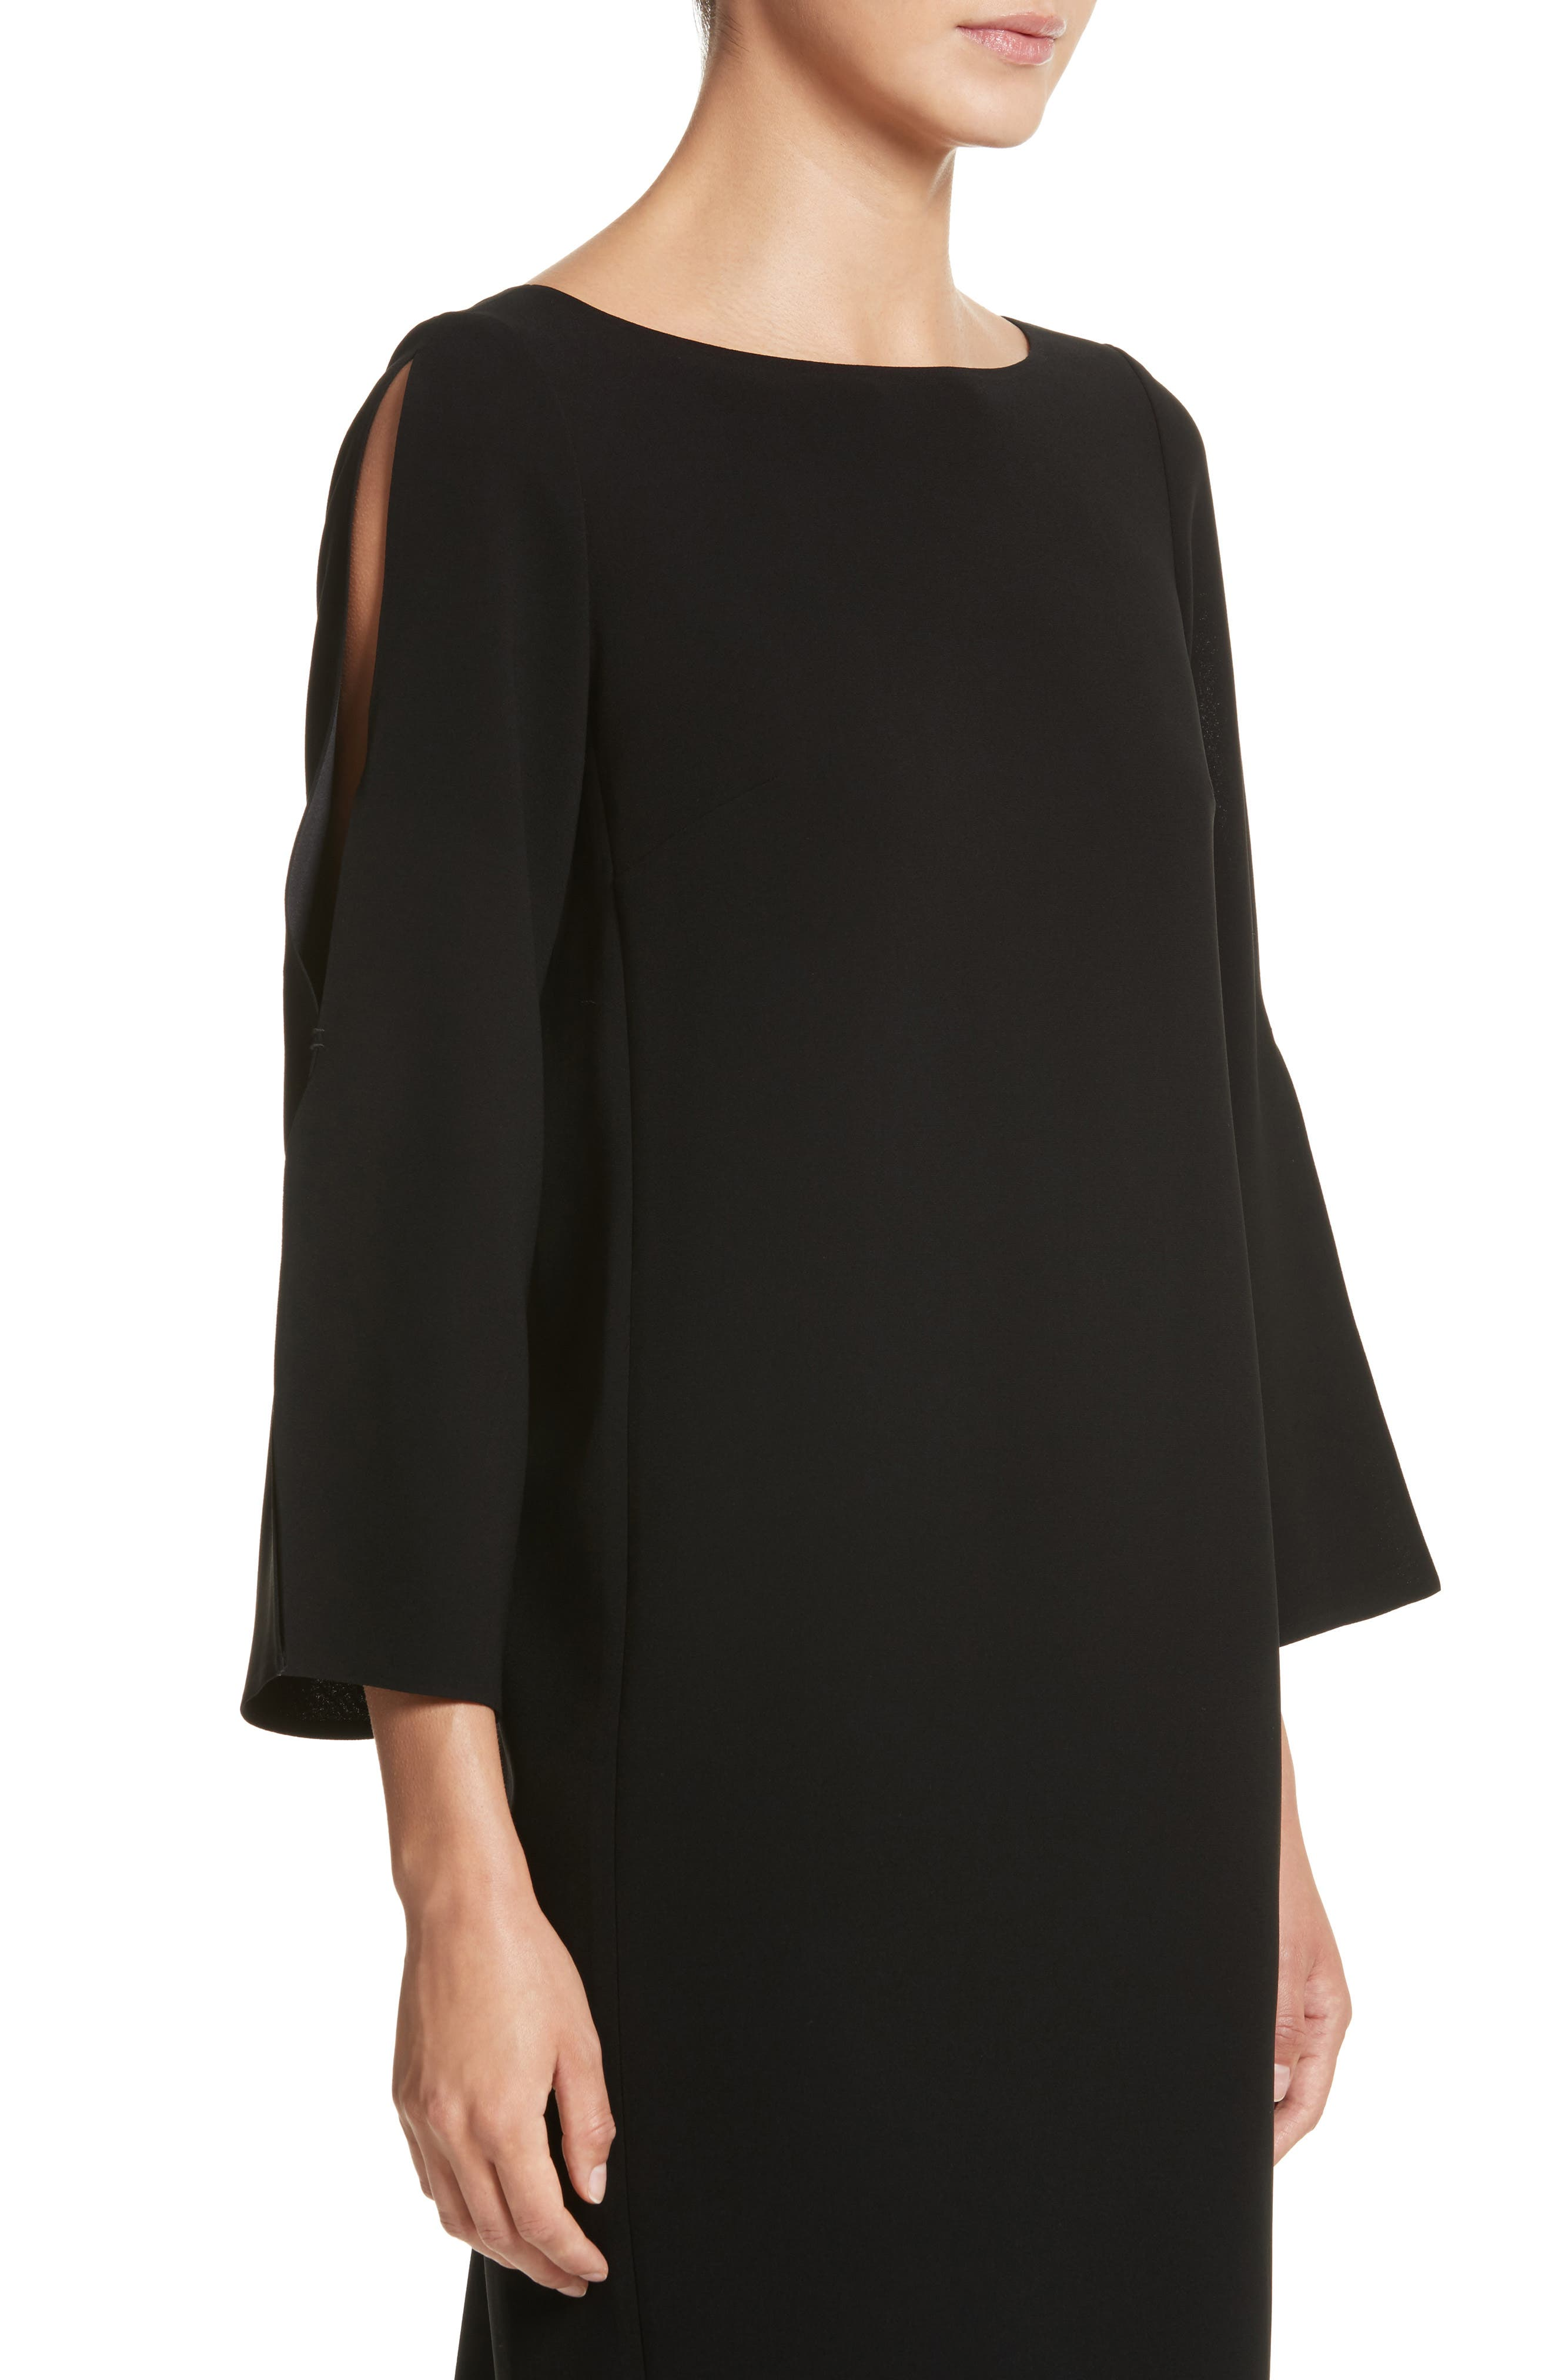 LAFAYETTE 148 NEW YORK,                             Candace Finesse Crepe Shift Dress,                             Alternate thumbnail 4, color,                             001